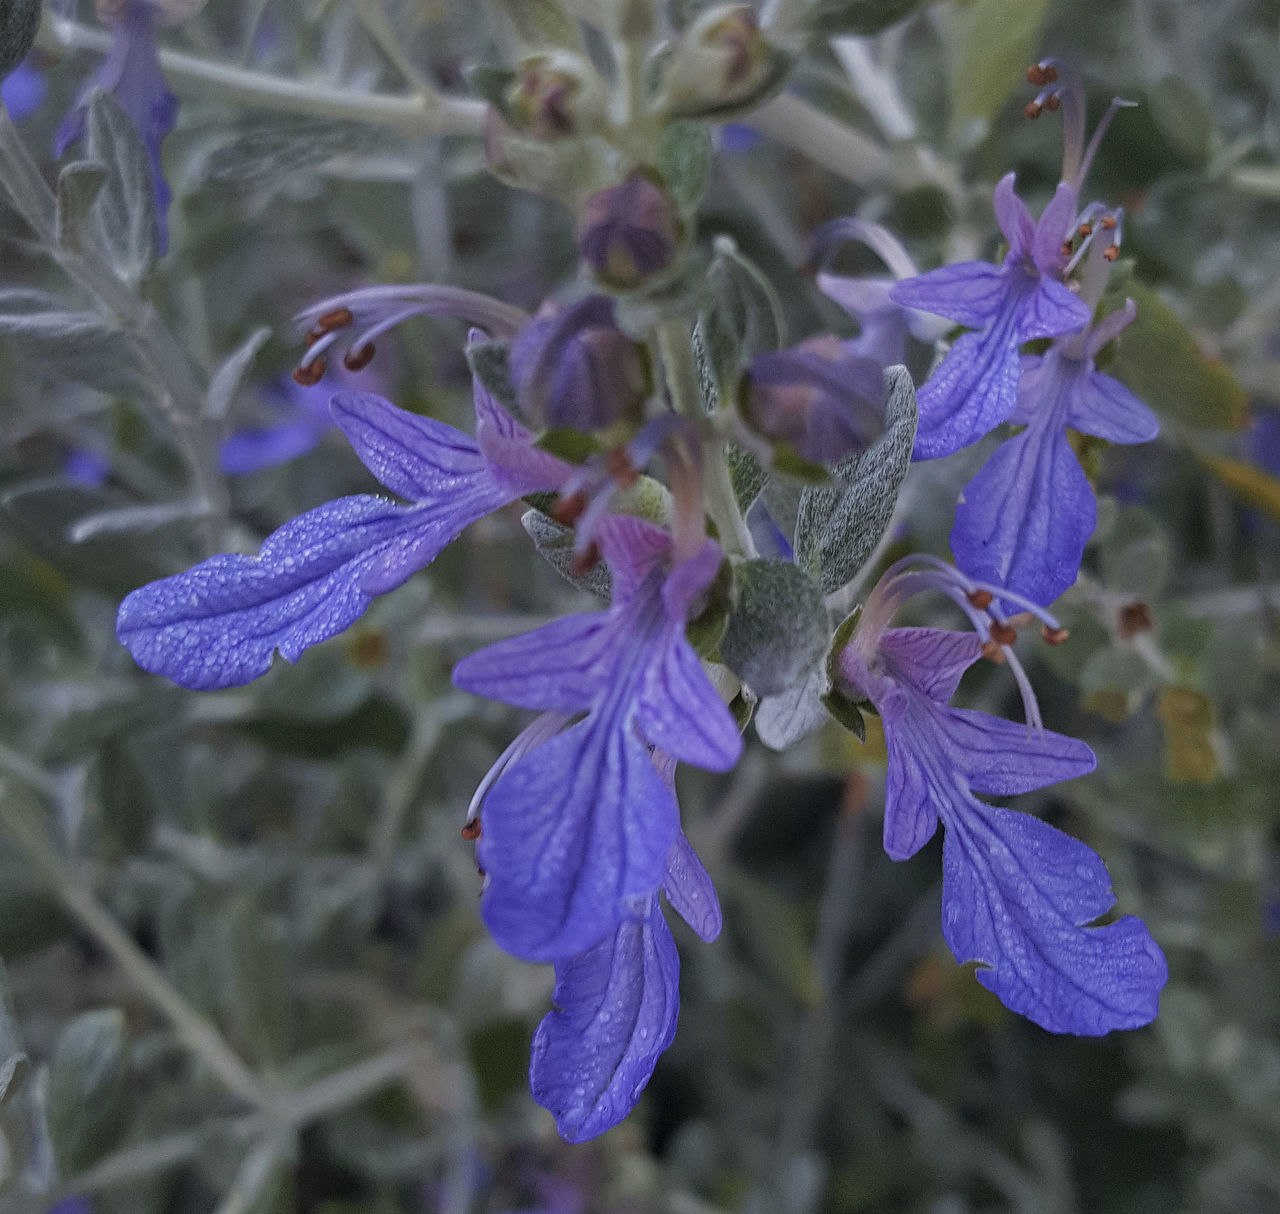 Botany Brooding Close-up Flower Gray Foliage No People Purple Rich Colors